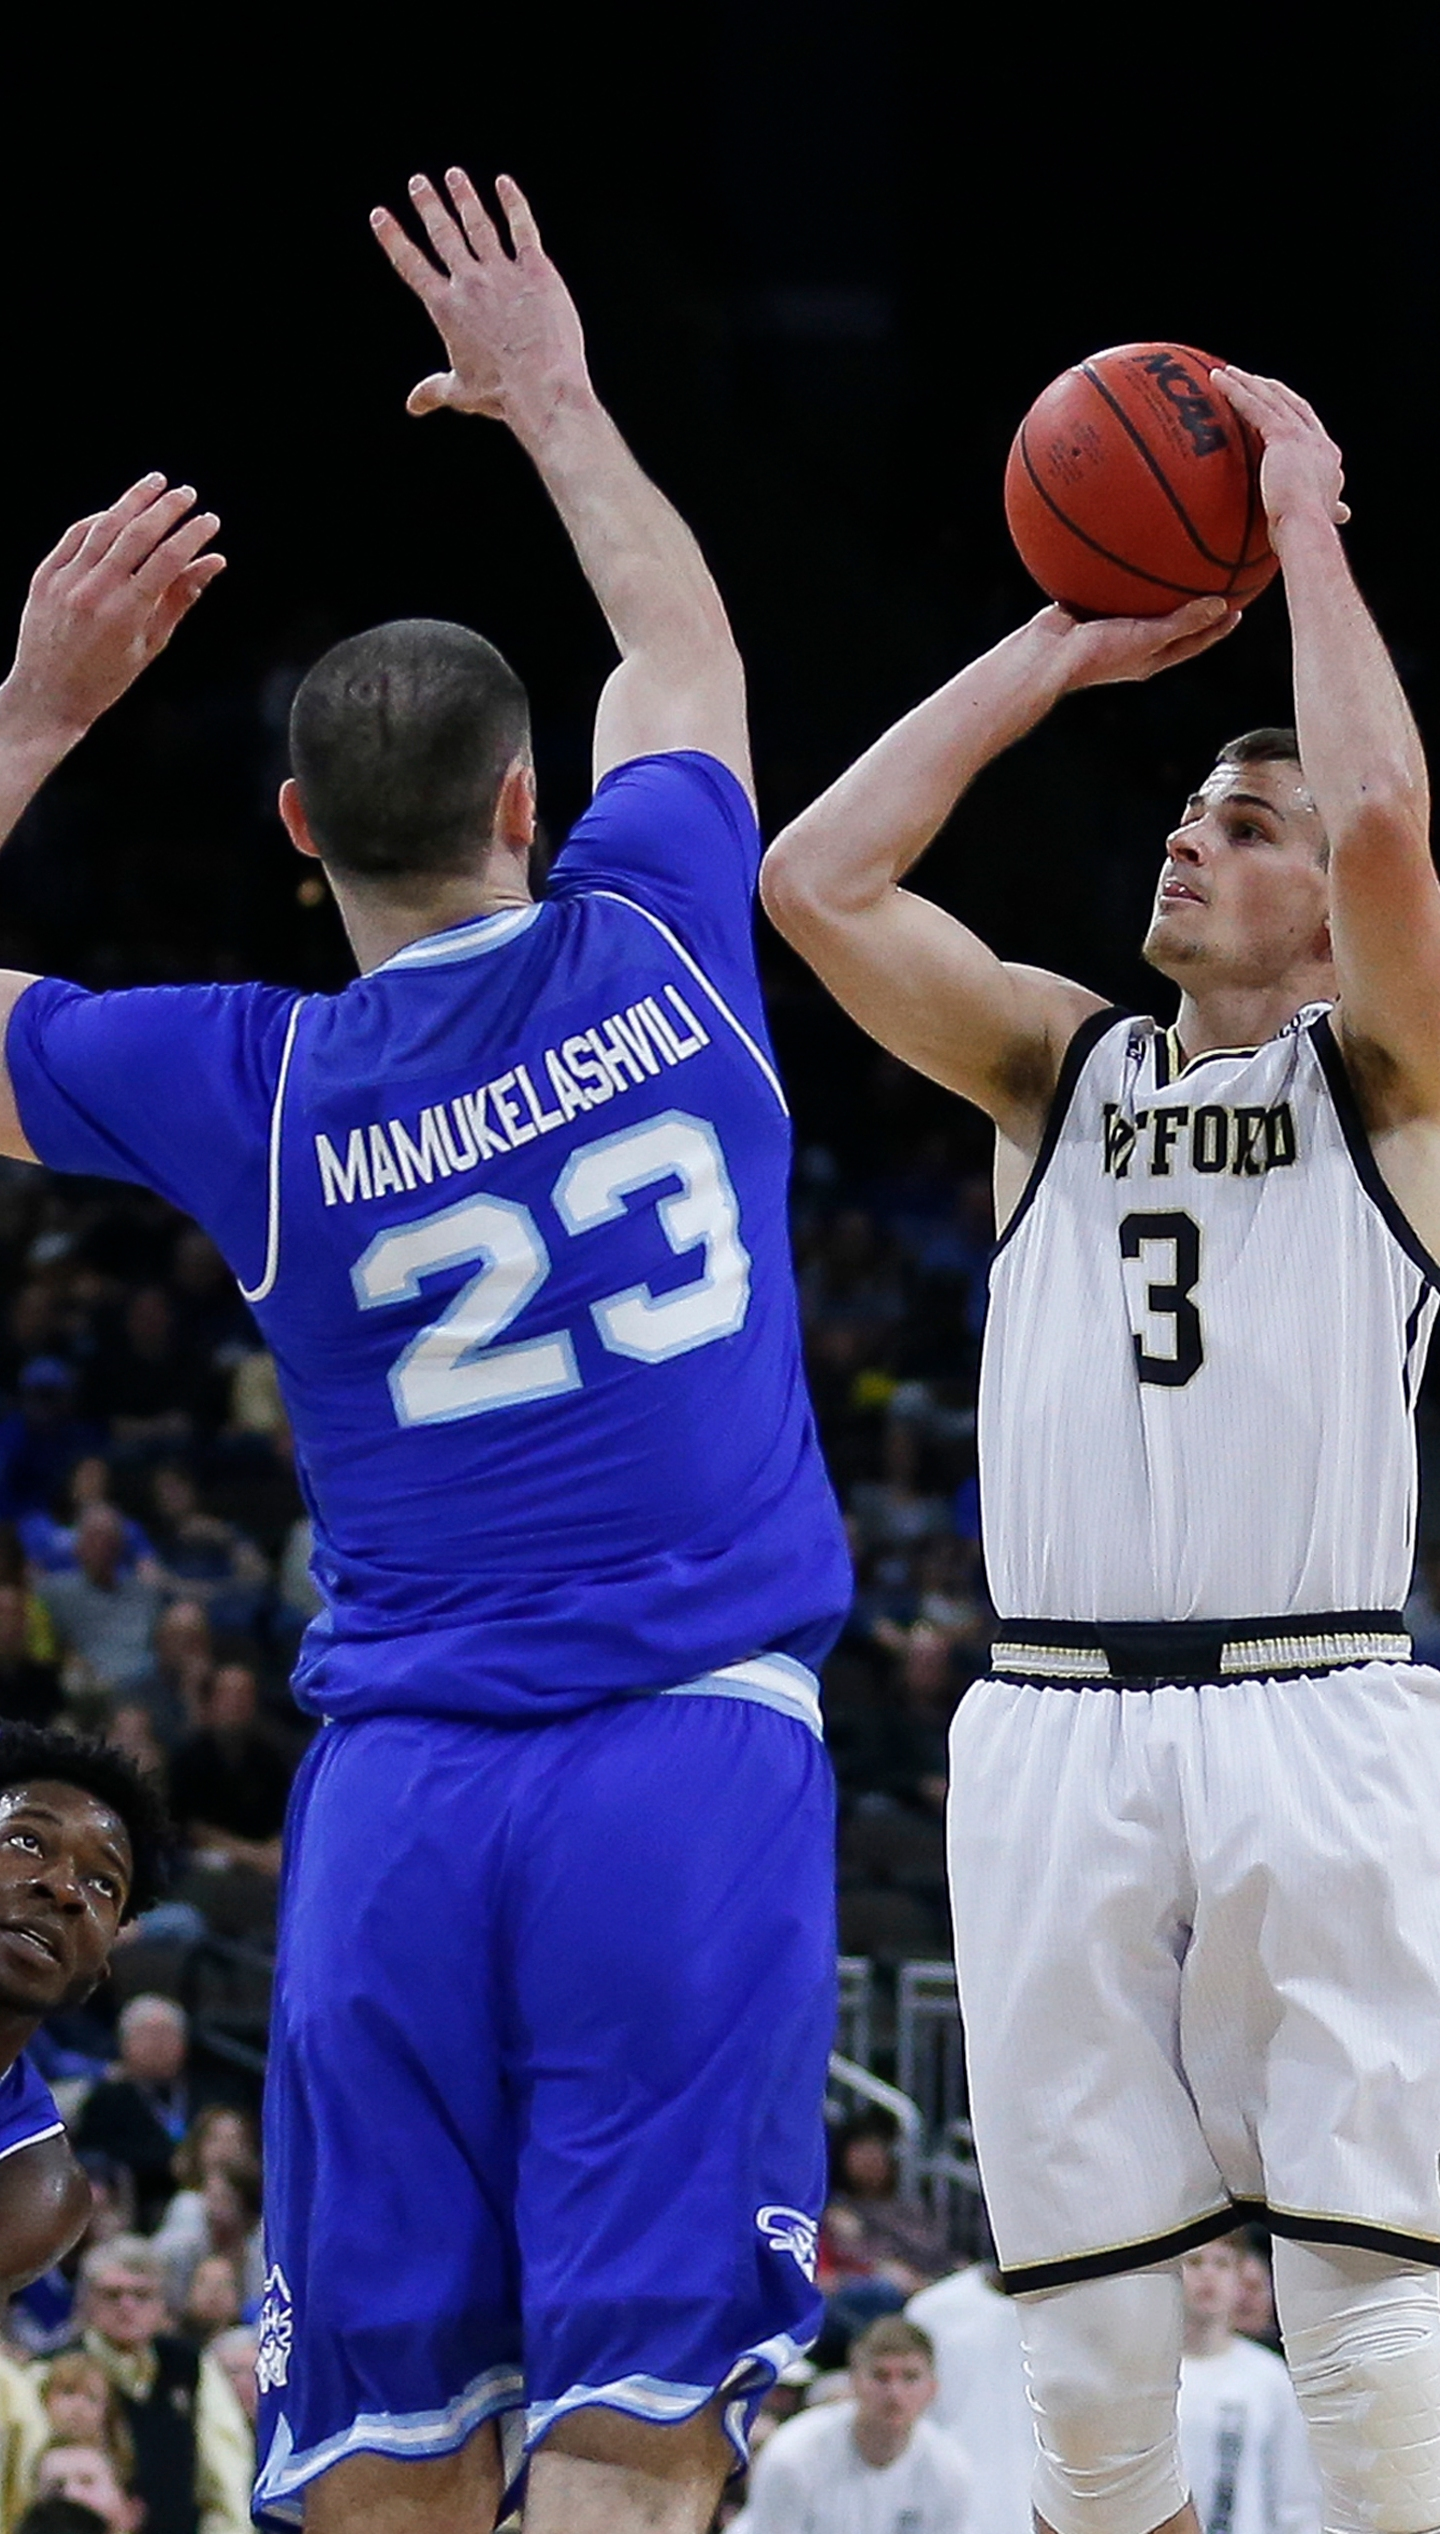 NCAA_Seton_Hall_Wofford_Basketball_37412-159532.jpg62291657